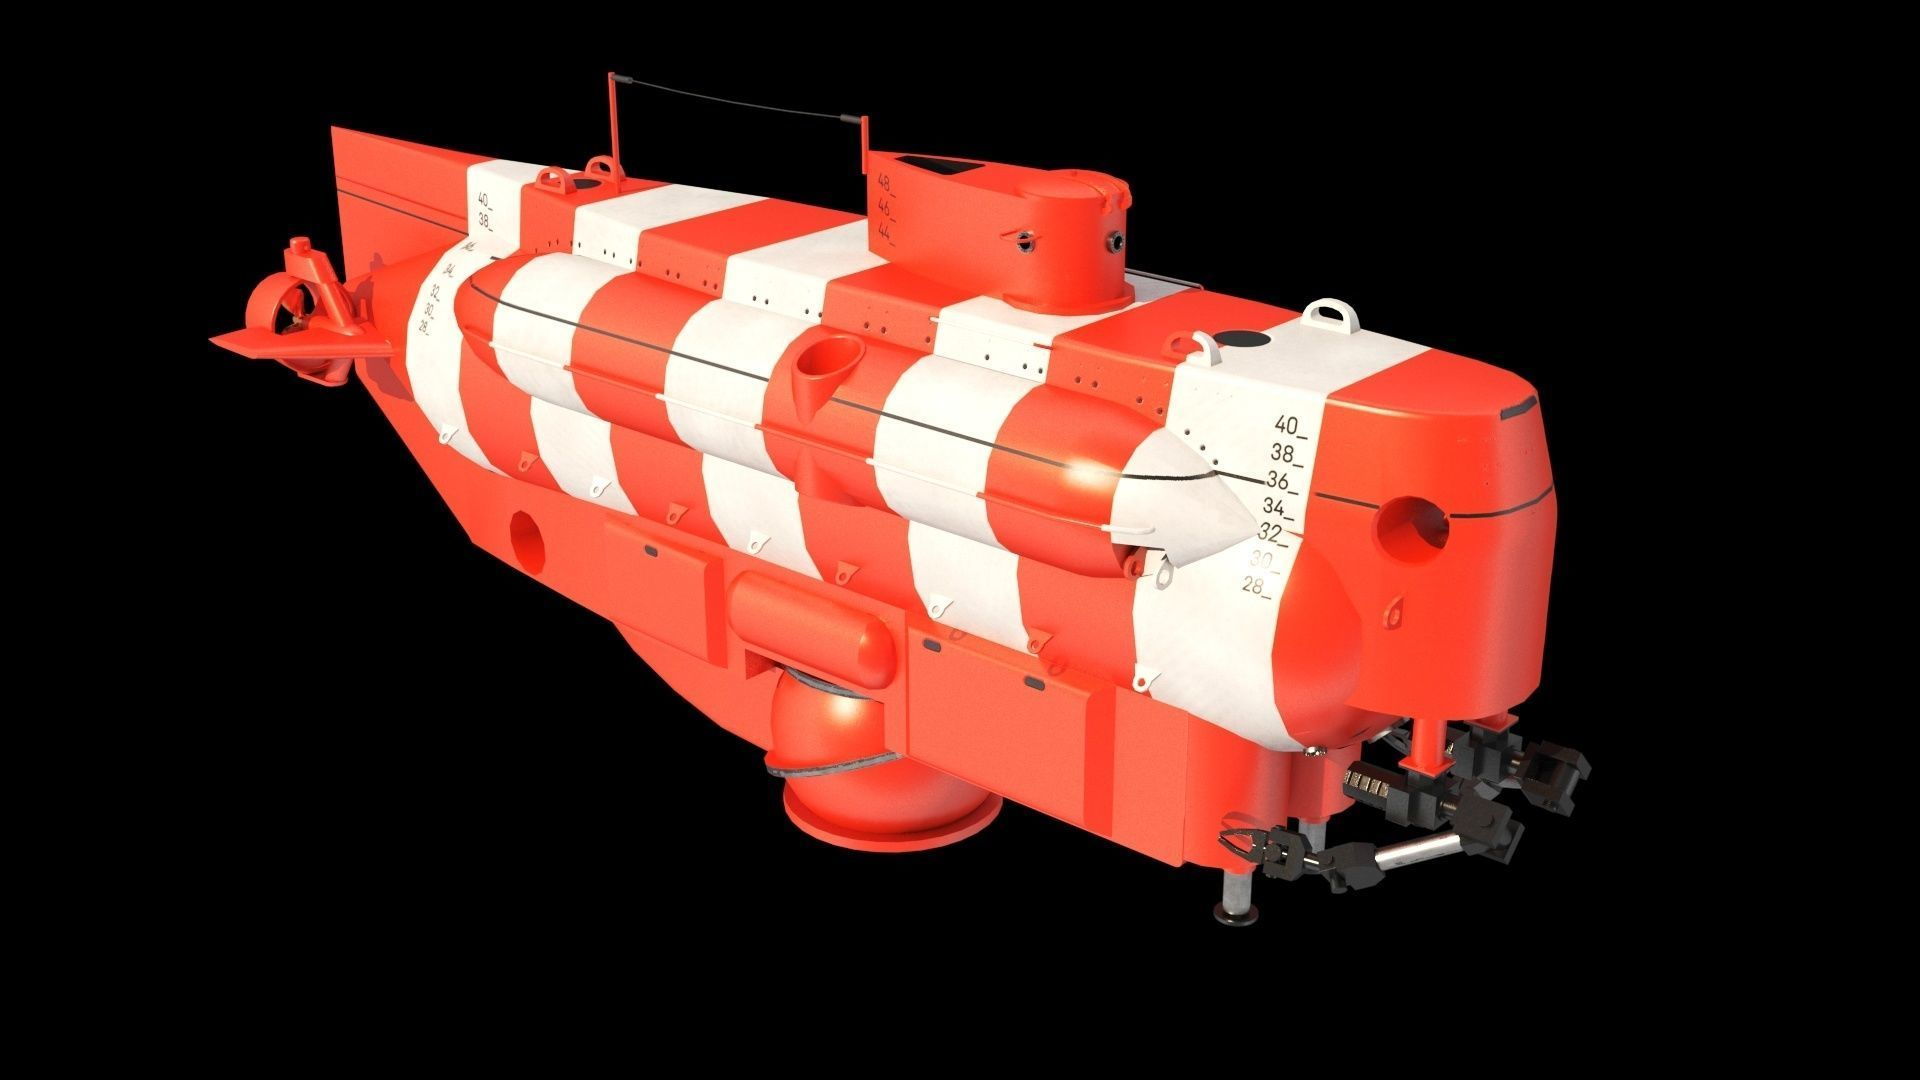 As 40 Bester Deep-submergence rescue vehicle